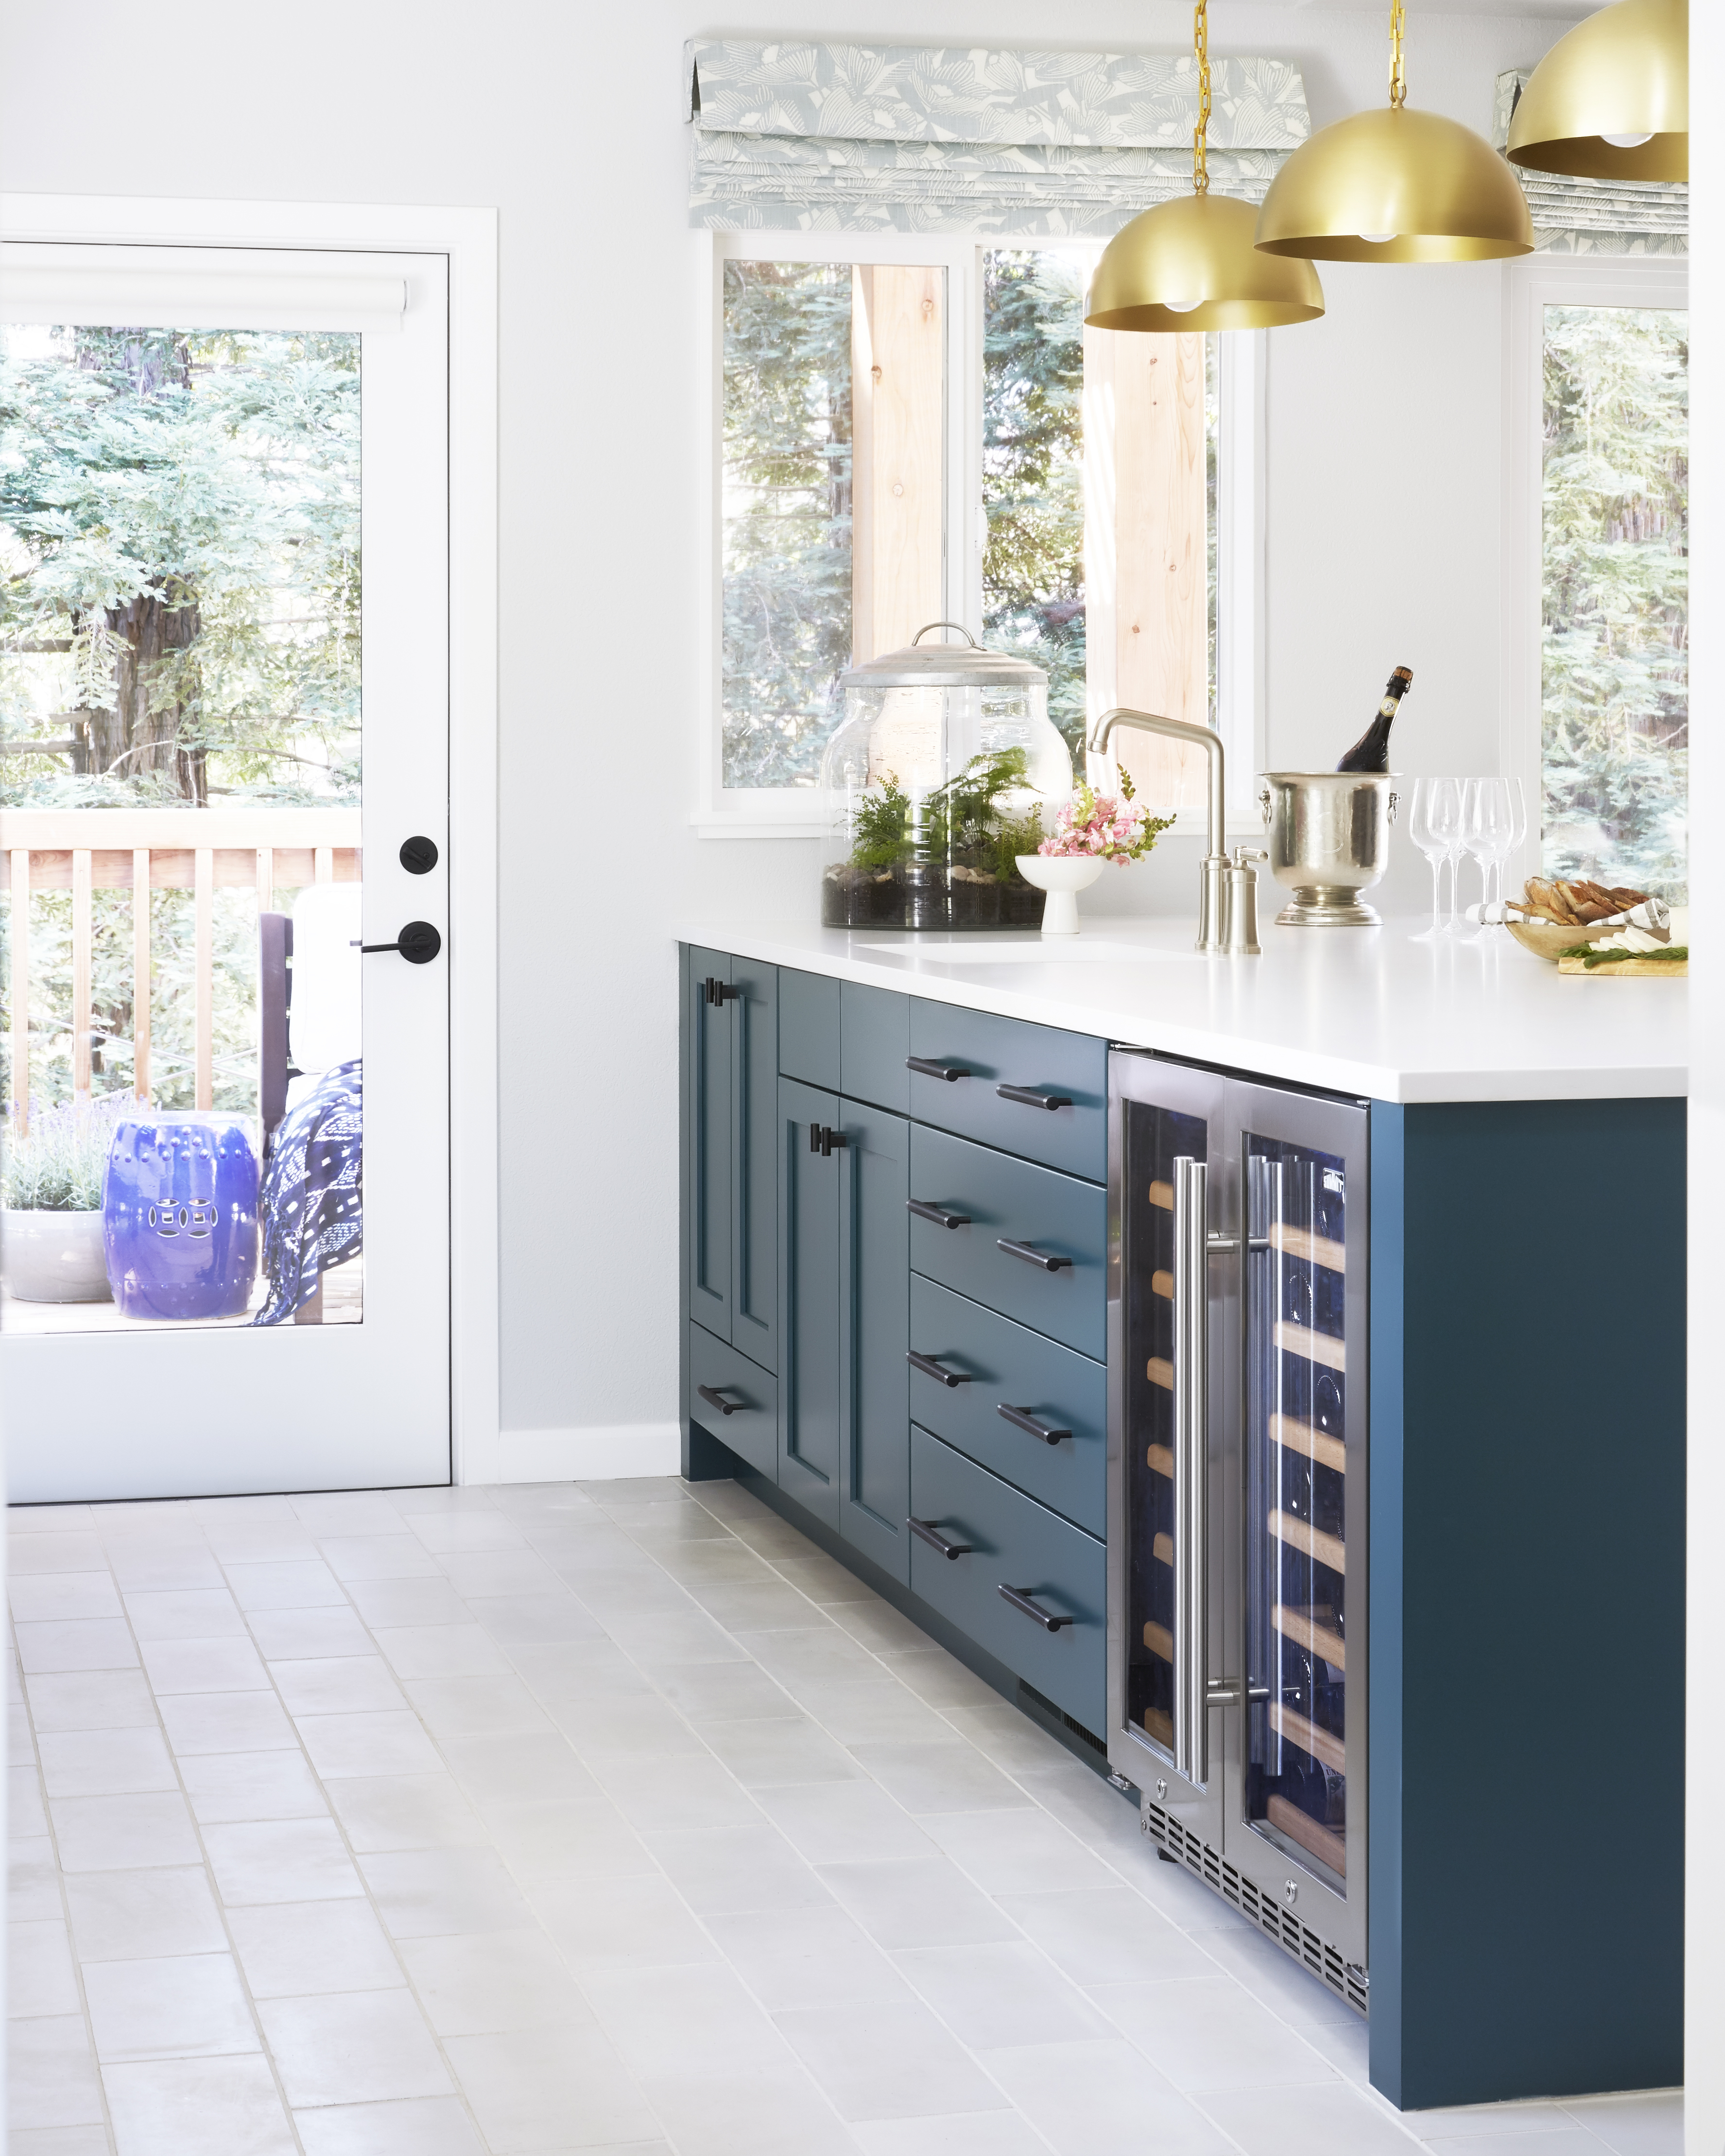 This peacock blue island perfectly compliments the other finishes in this stand out kitchen.